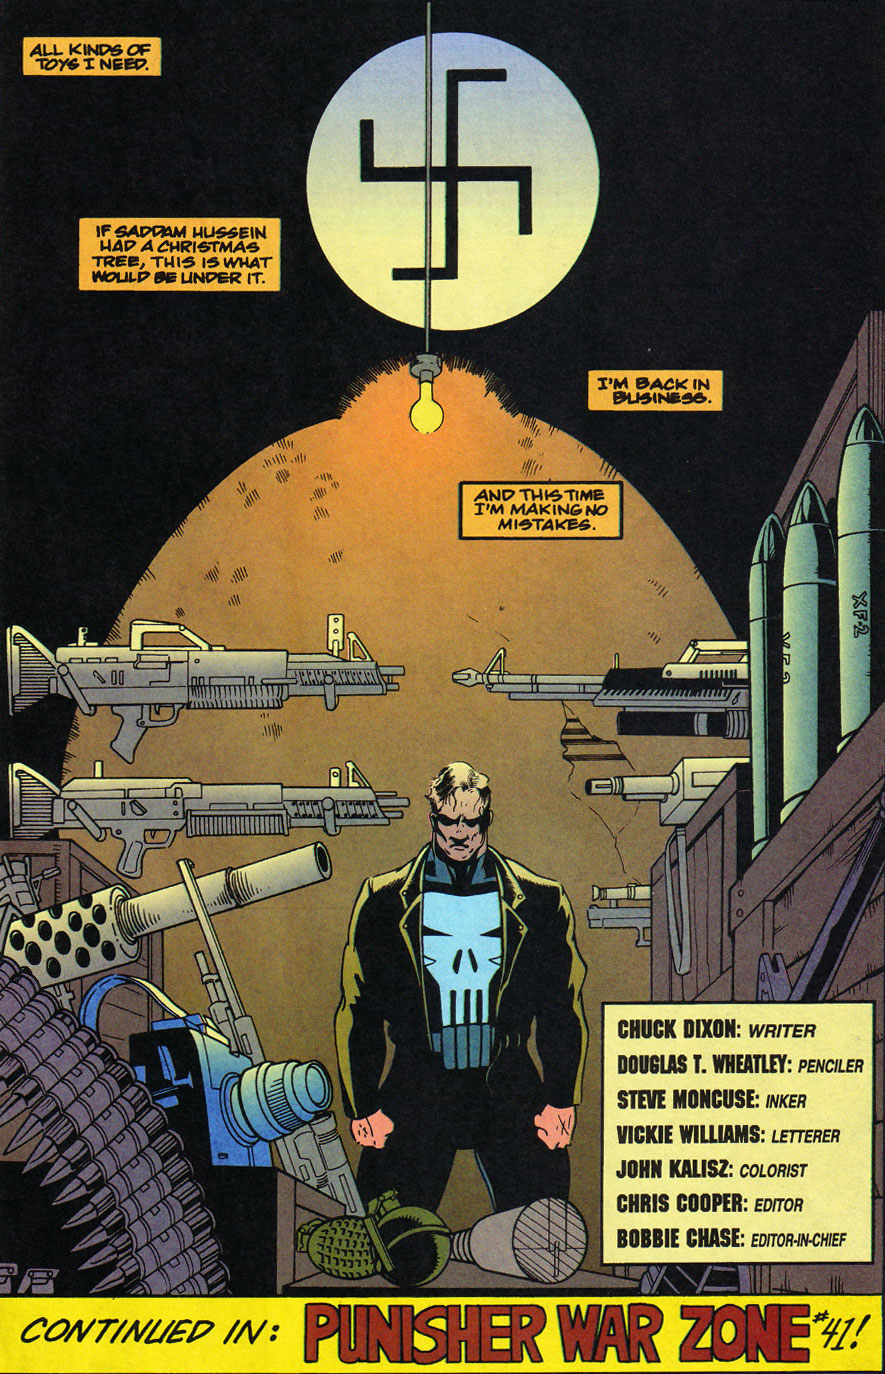 Punisher War Journal #79.